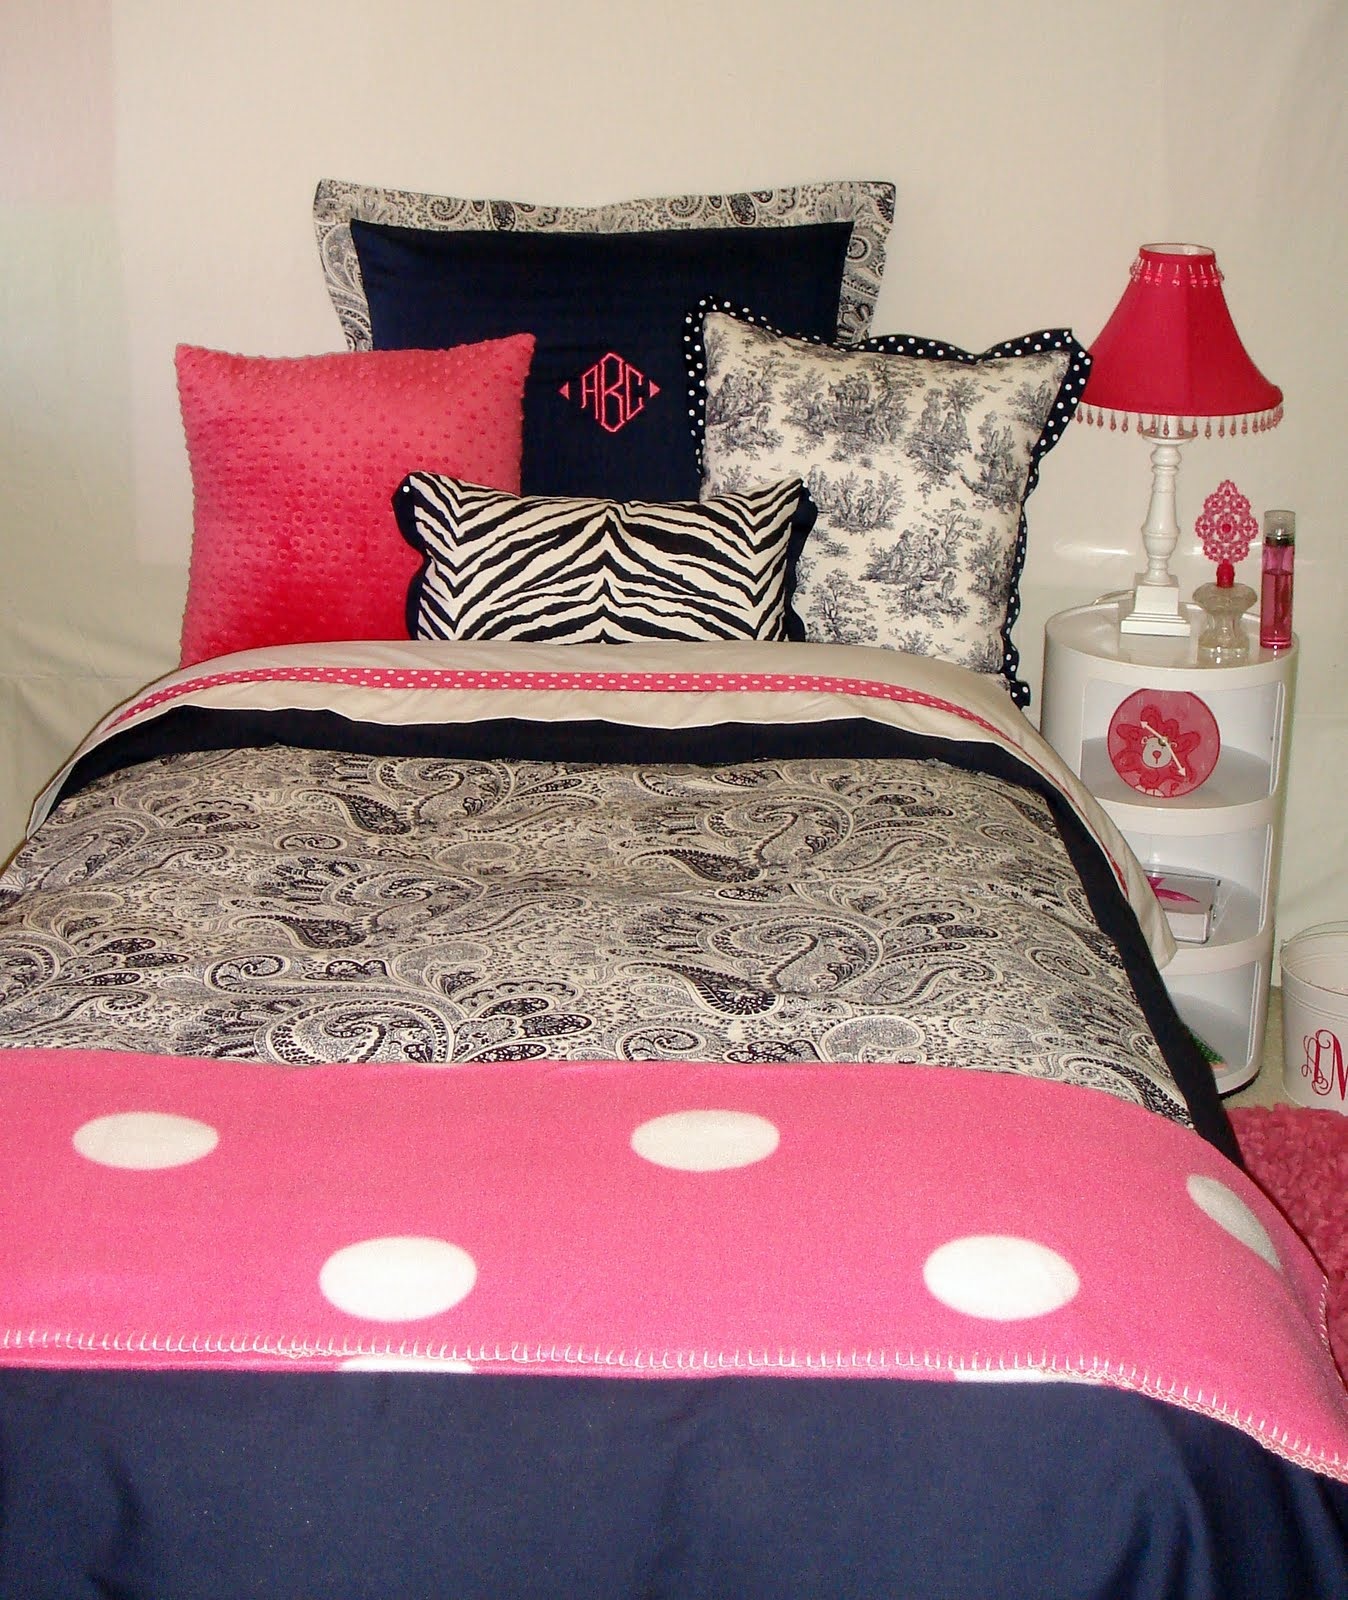 Decor 2 ur door how do i decorate my college dorm room - Dorm room bedding ideas ...